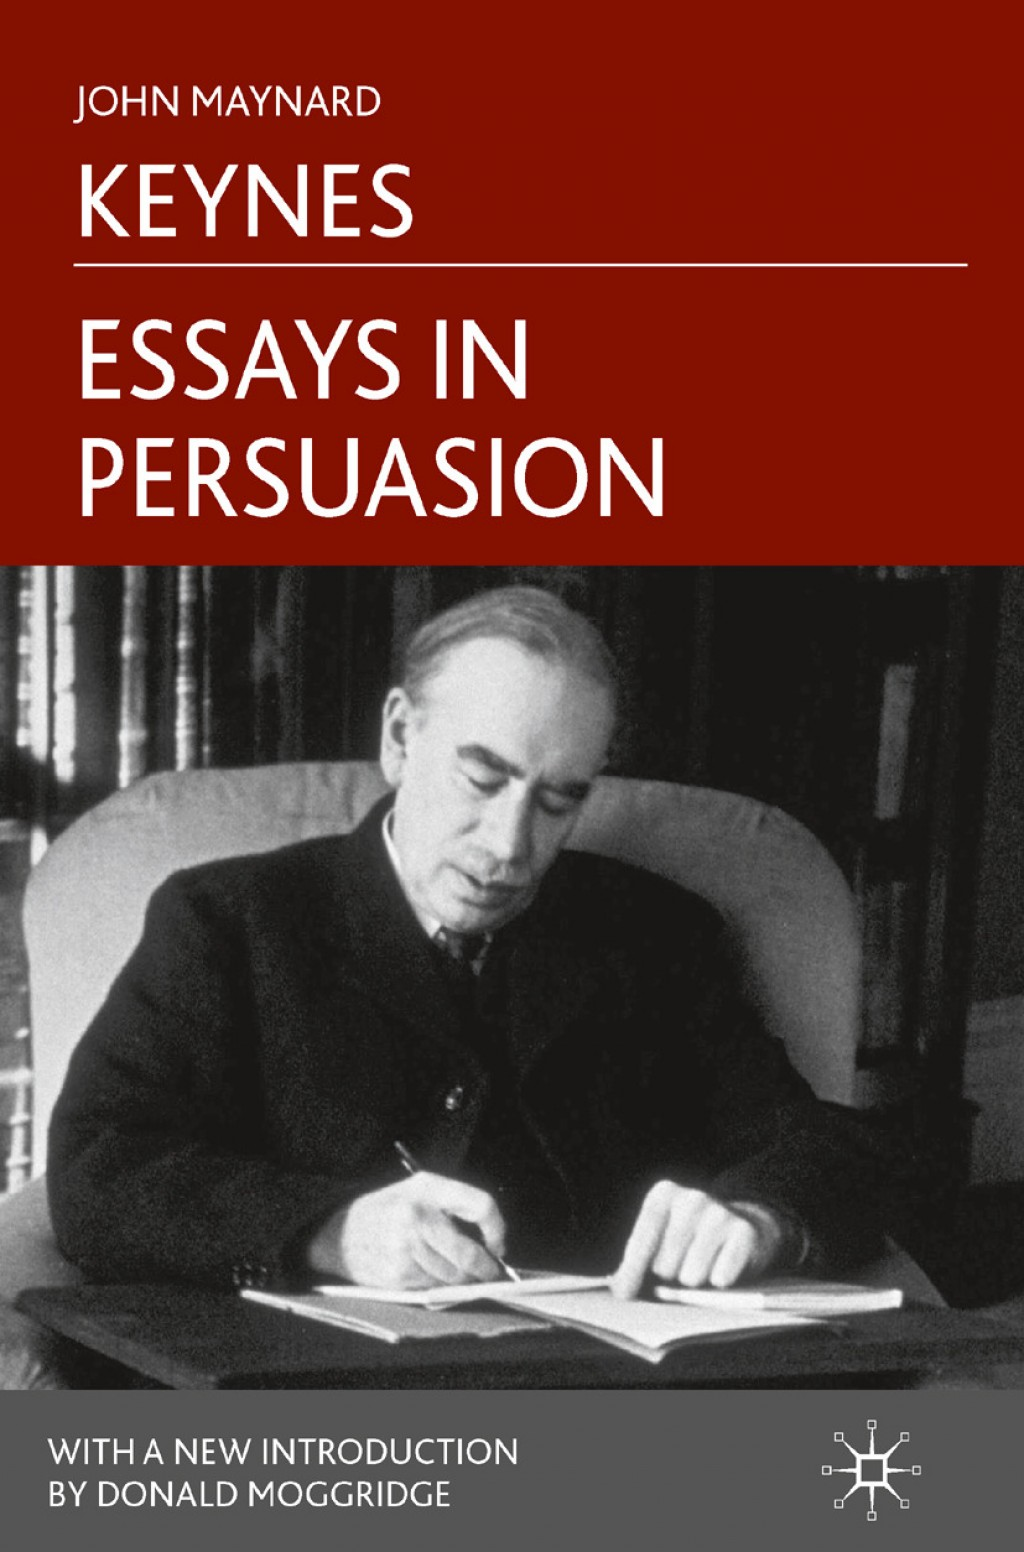 017 Essay Example Bookcover 978 Essays In Remarkable Persuasion Keynes 1931 Wikipedia Summary Large